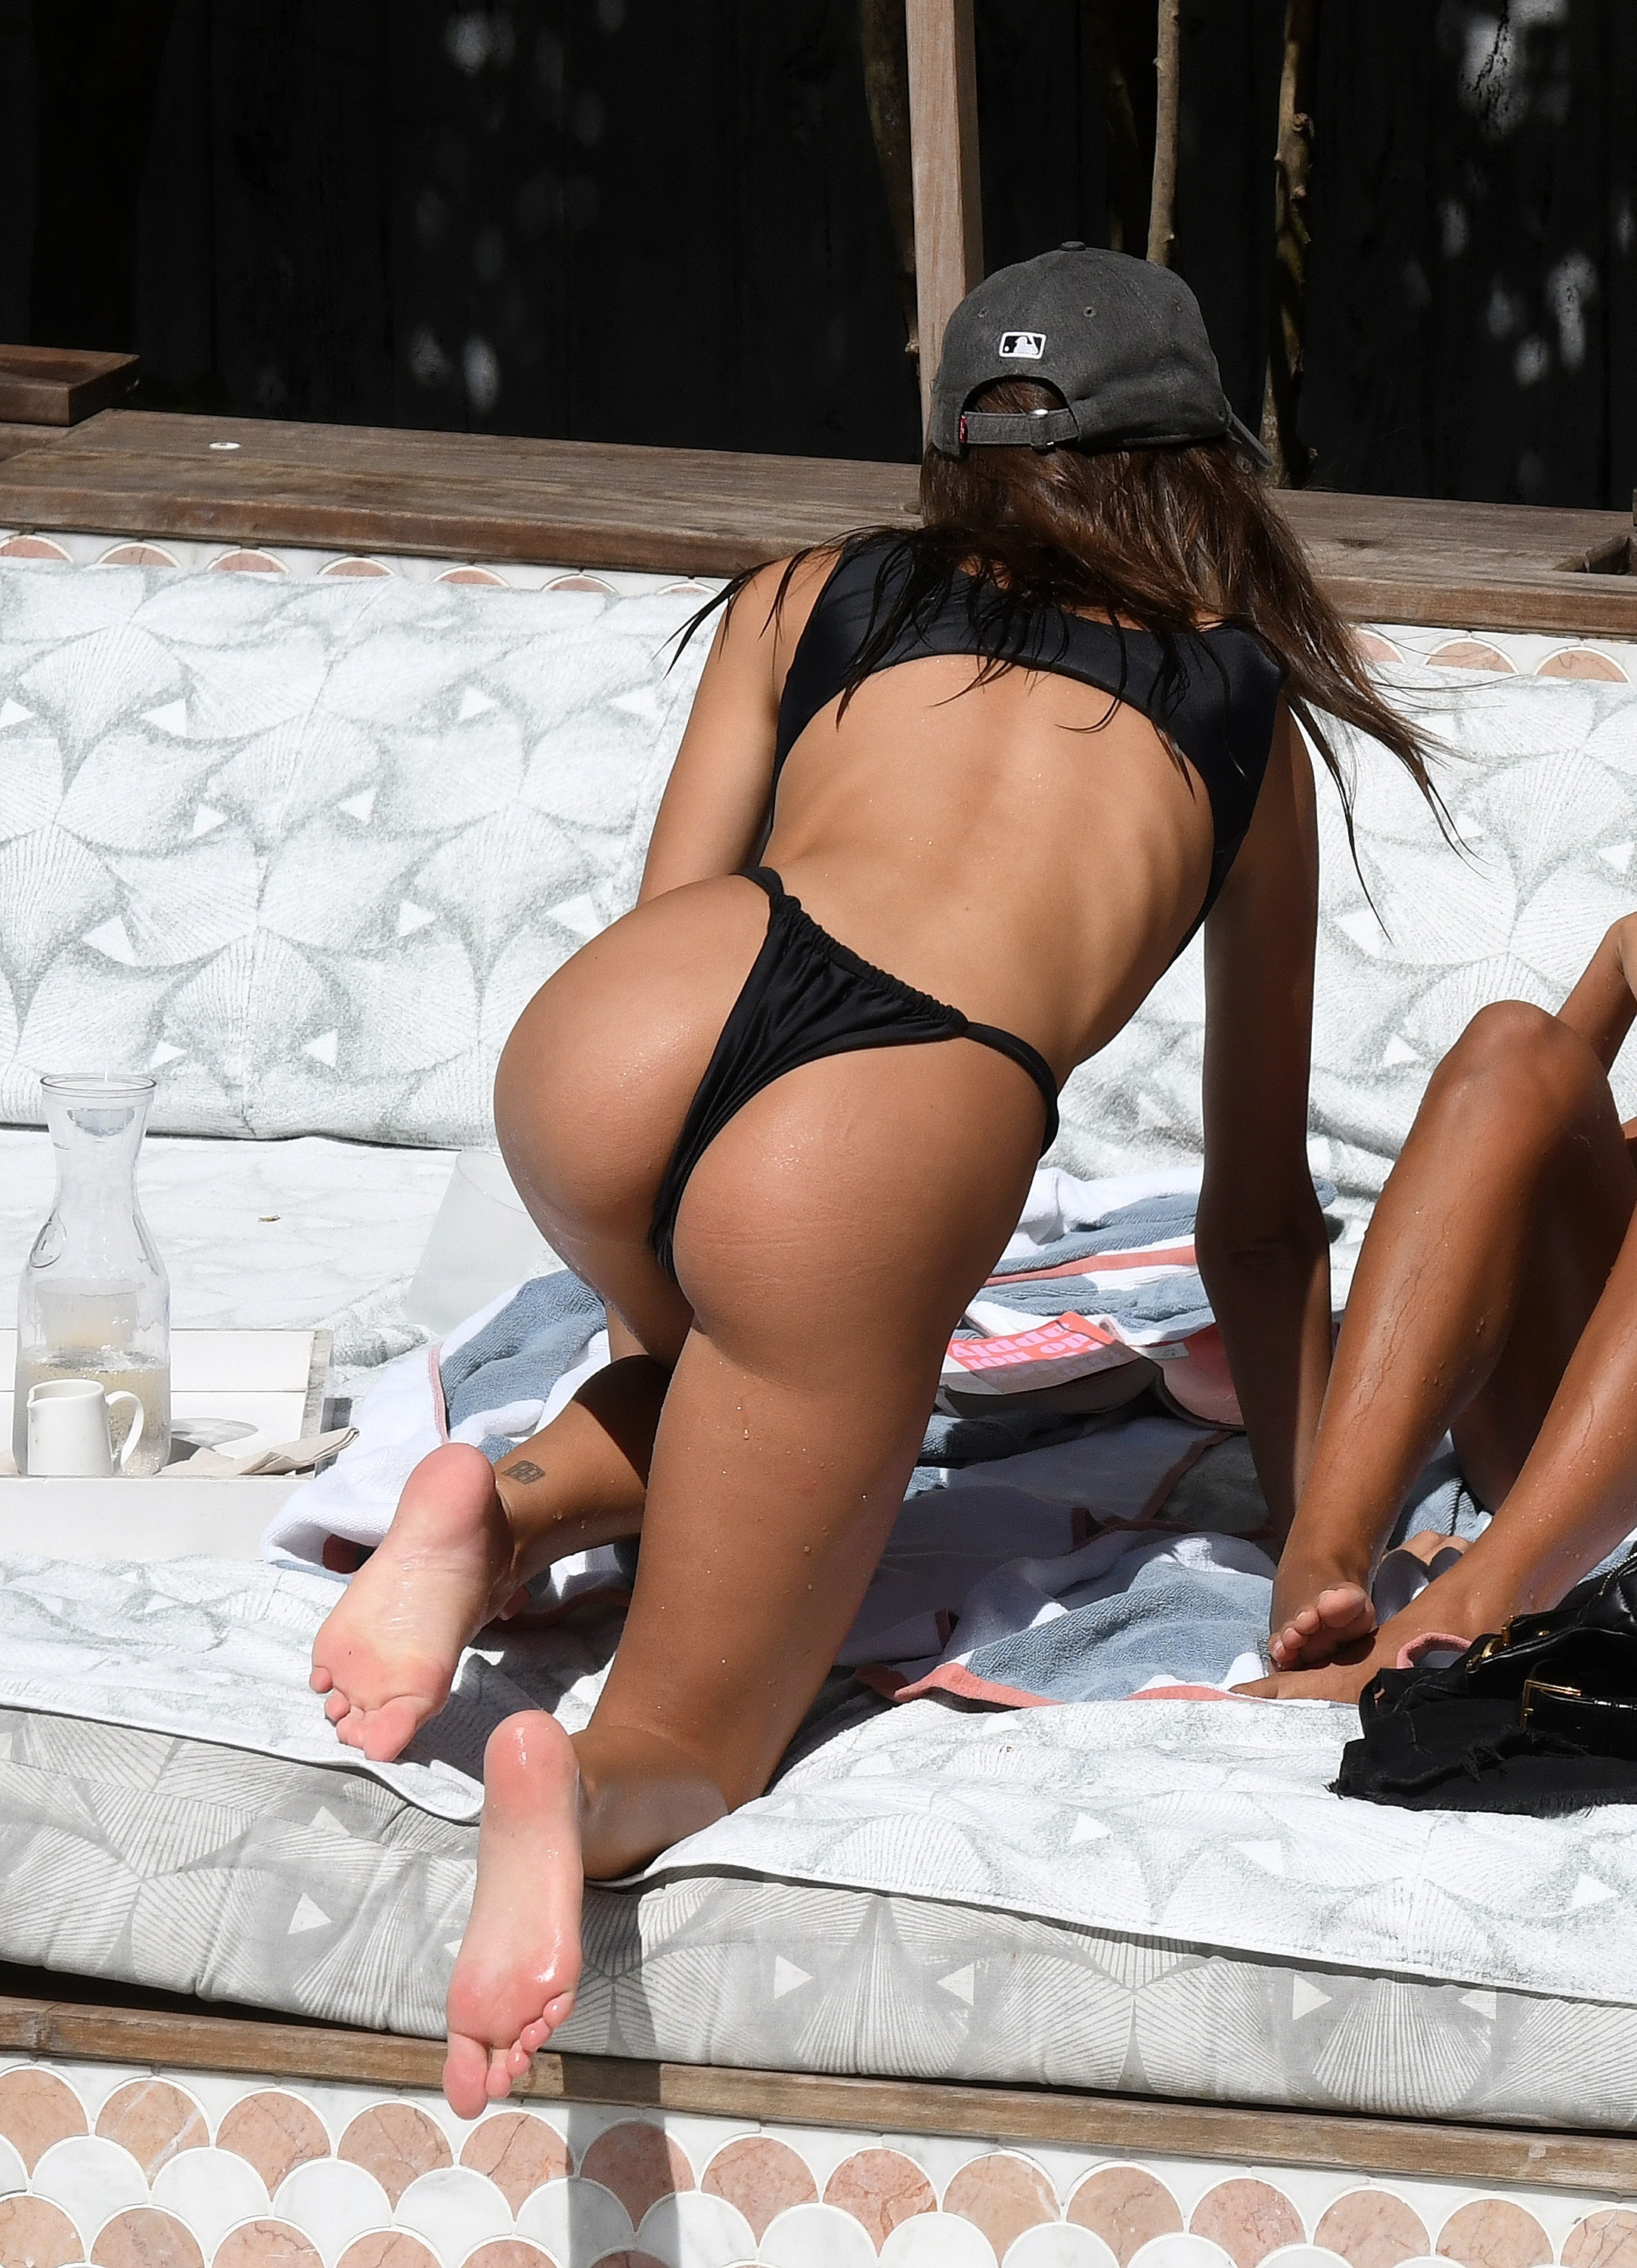 Actress and model Emily Ratajkowski wears black bikini as she tops up her tan by the pool in Miami. 16 Oct 2019 Pictured: Emily Ratajkowski. Photo credit: MEGA TheMegaAgency.com +1 888 505 6342